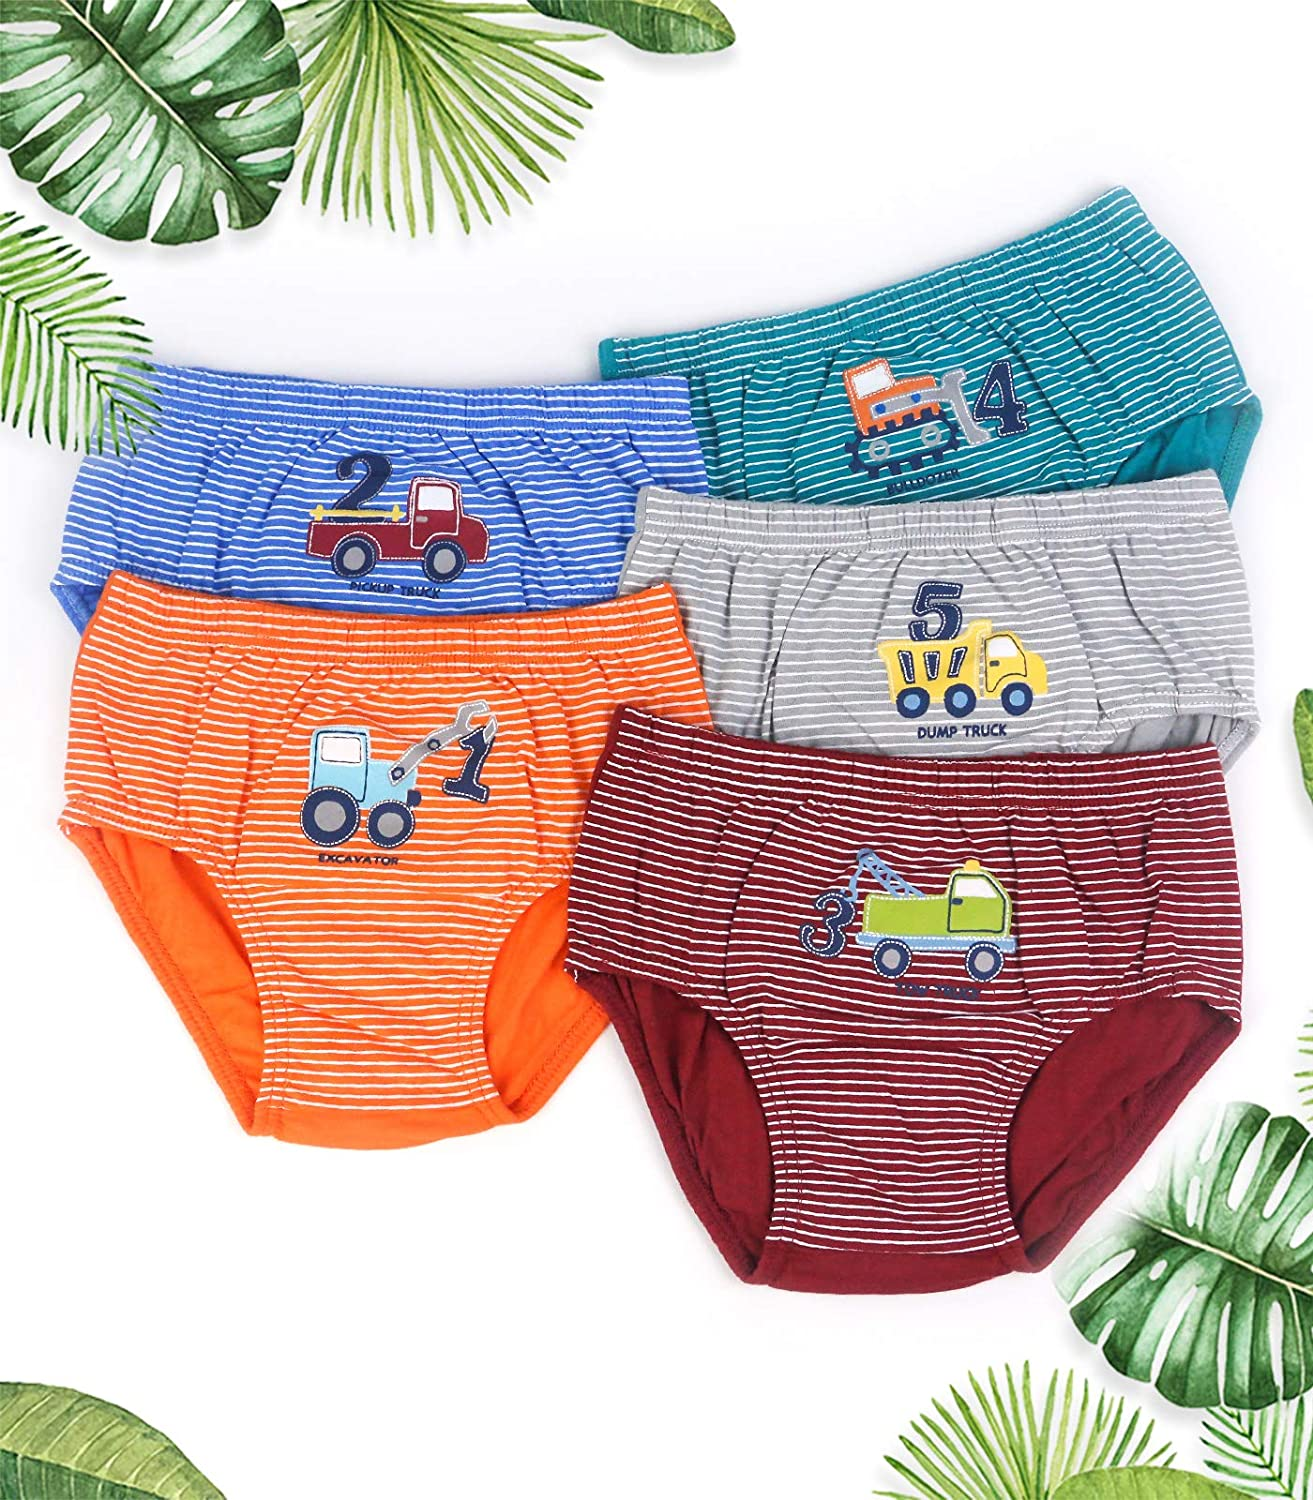 ORPAPA Little Boys Underwear Toddler Car Truck Underpants 5 Pack Kids Cotton Stripes Briefs Pants 2-8 Years